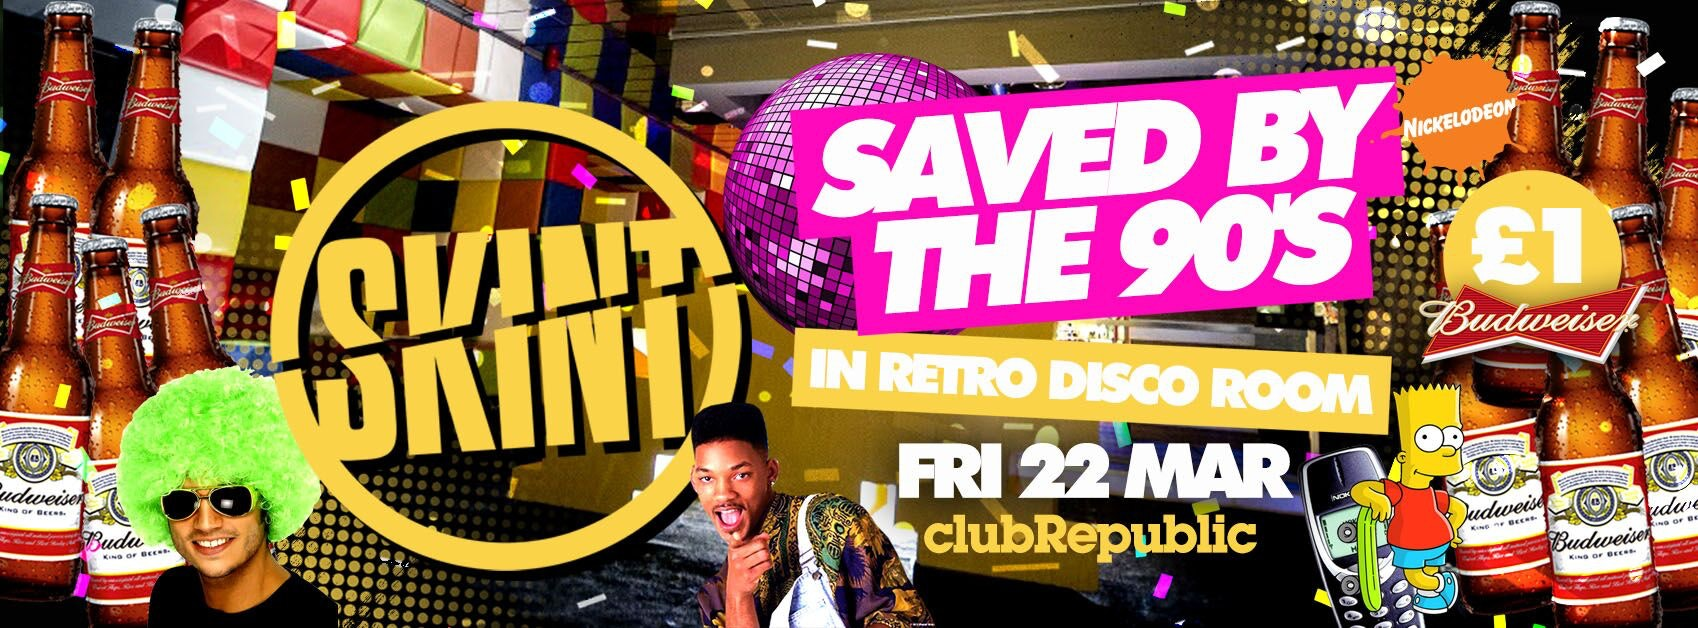 ★ Skint Fridays ★ Saved By The 90s ★ £1 BUDS ALL NIGHT! ★ Club Republic ★